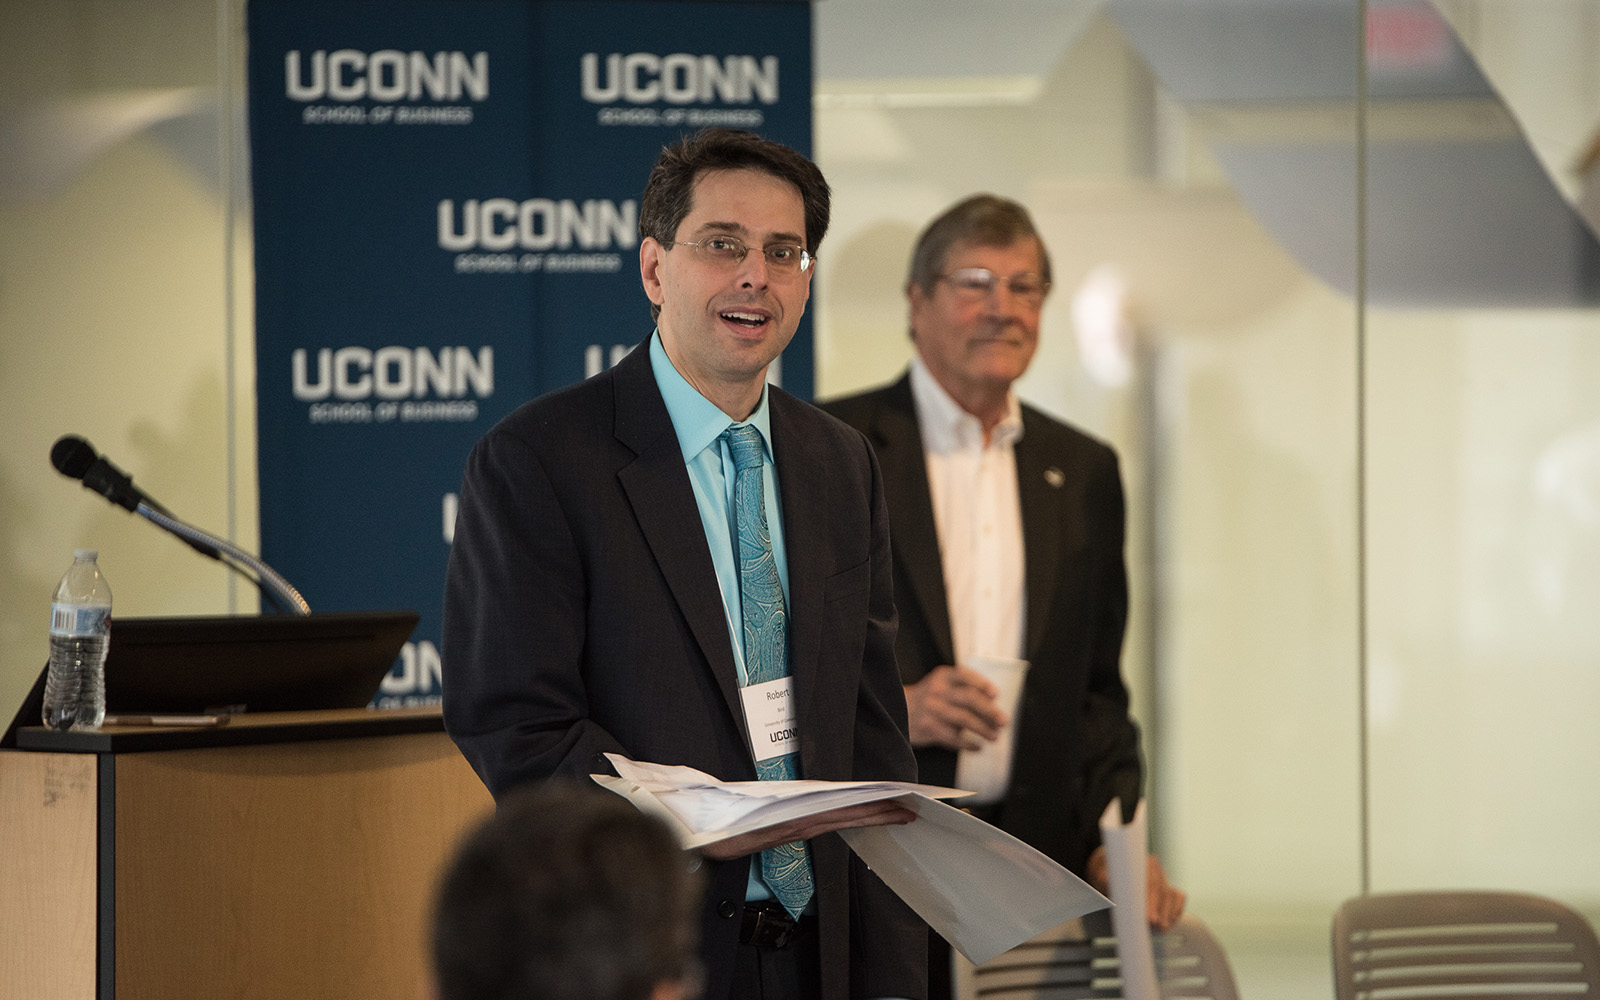 Professor Robert Bird (left) speaks during the Summit on the Academic Profession of Business Law, with Interim Provost John Elliott (Right) behind him. (Nathan Oldham / UConn School of Business)